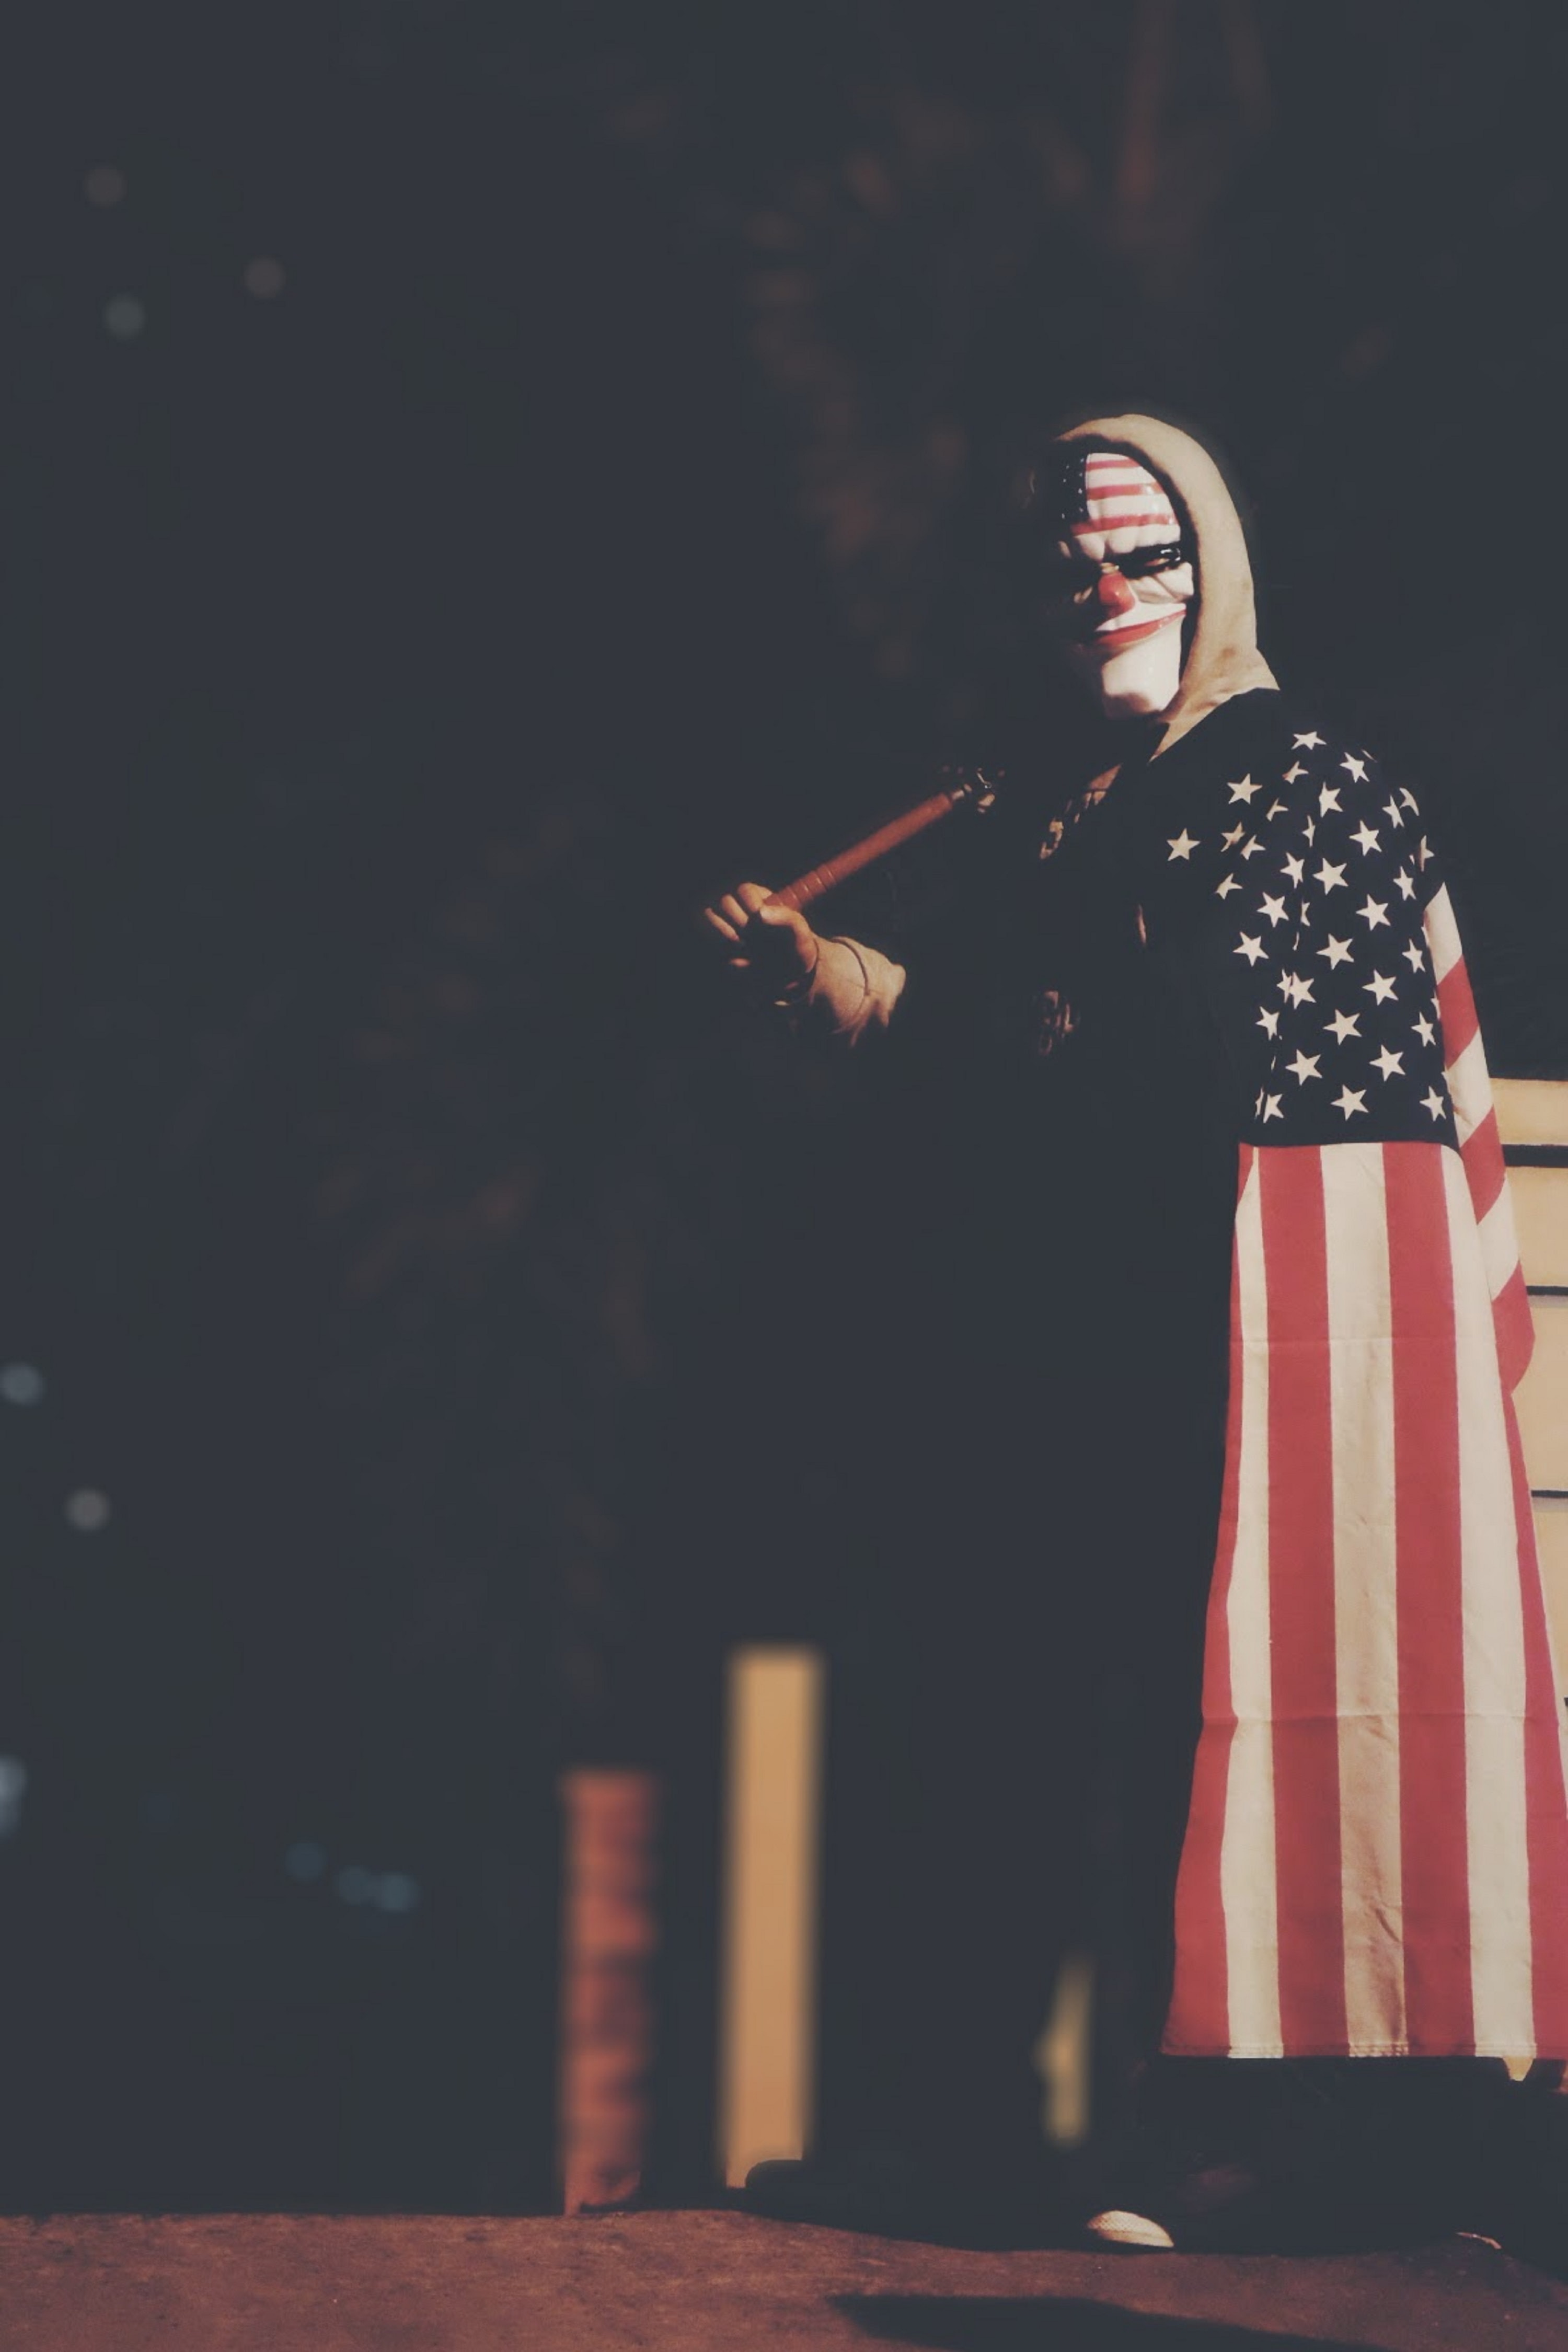 A figure costumed in an American flag, hoodie and mask